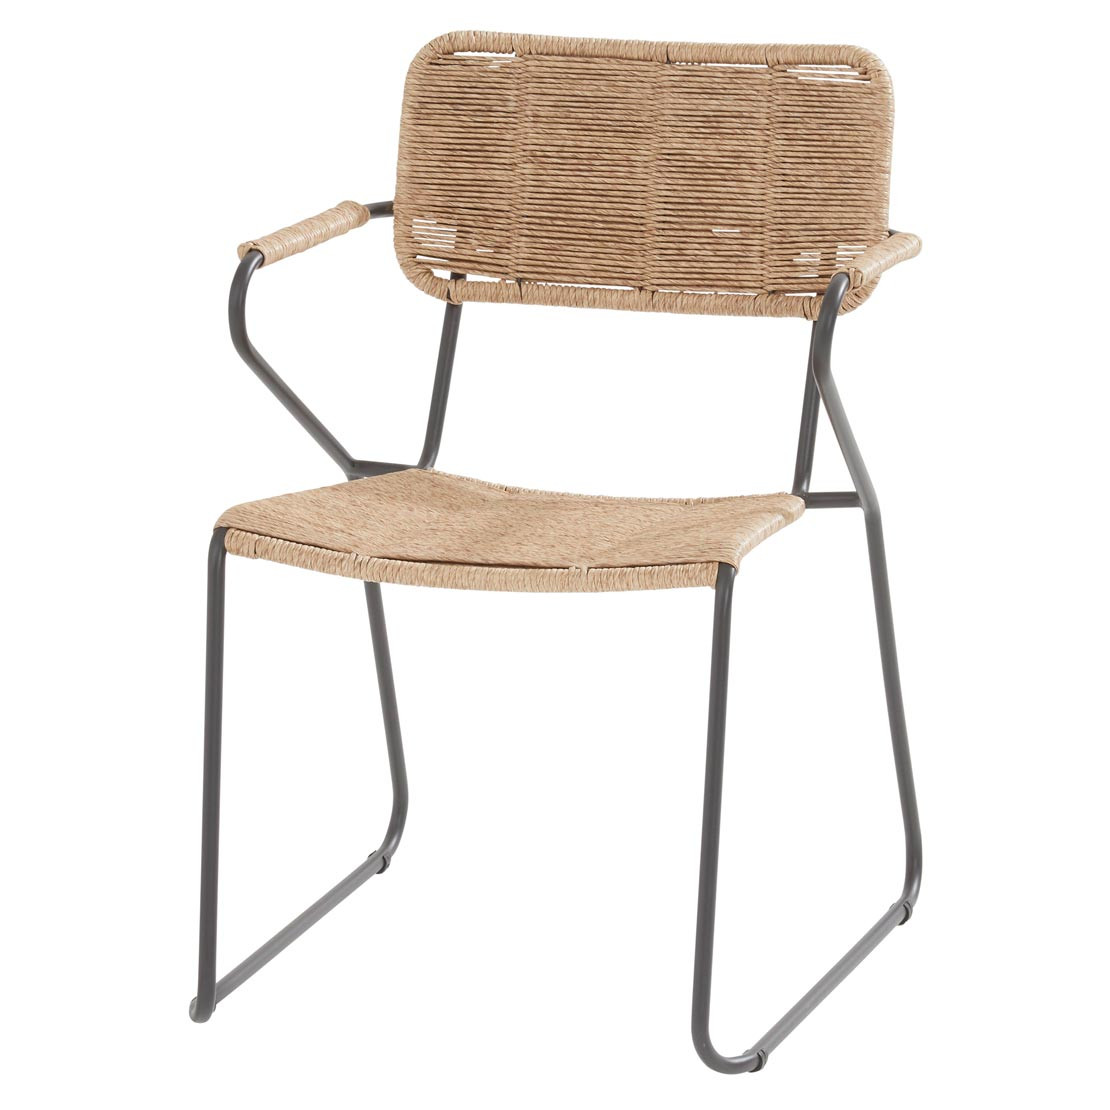 Swing stacking chair Natural